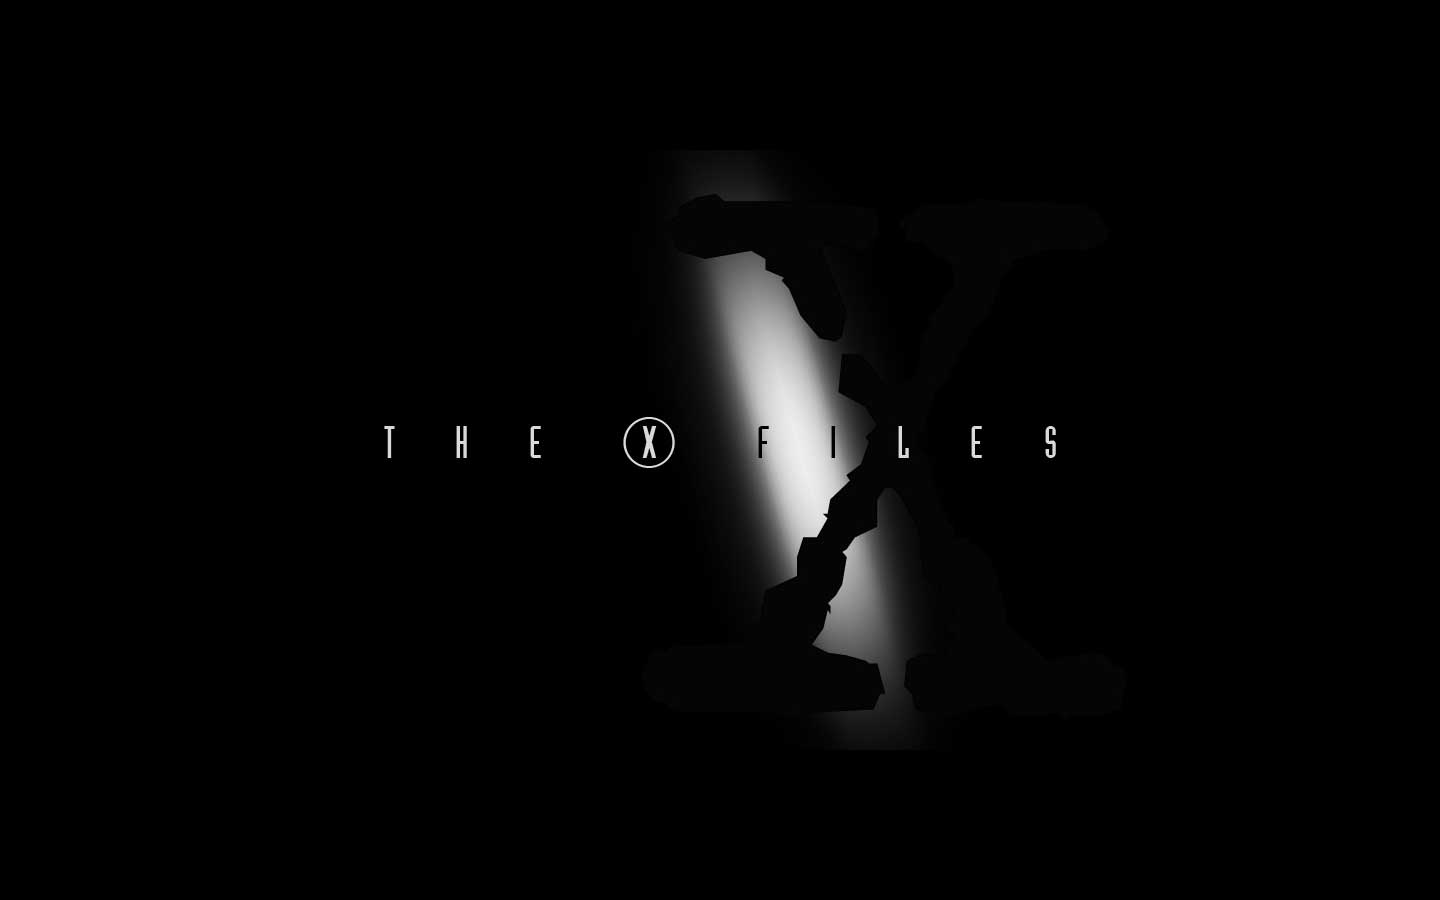 X File Wallpaper